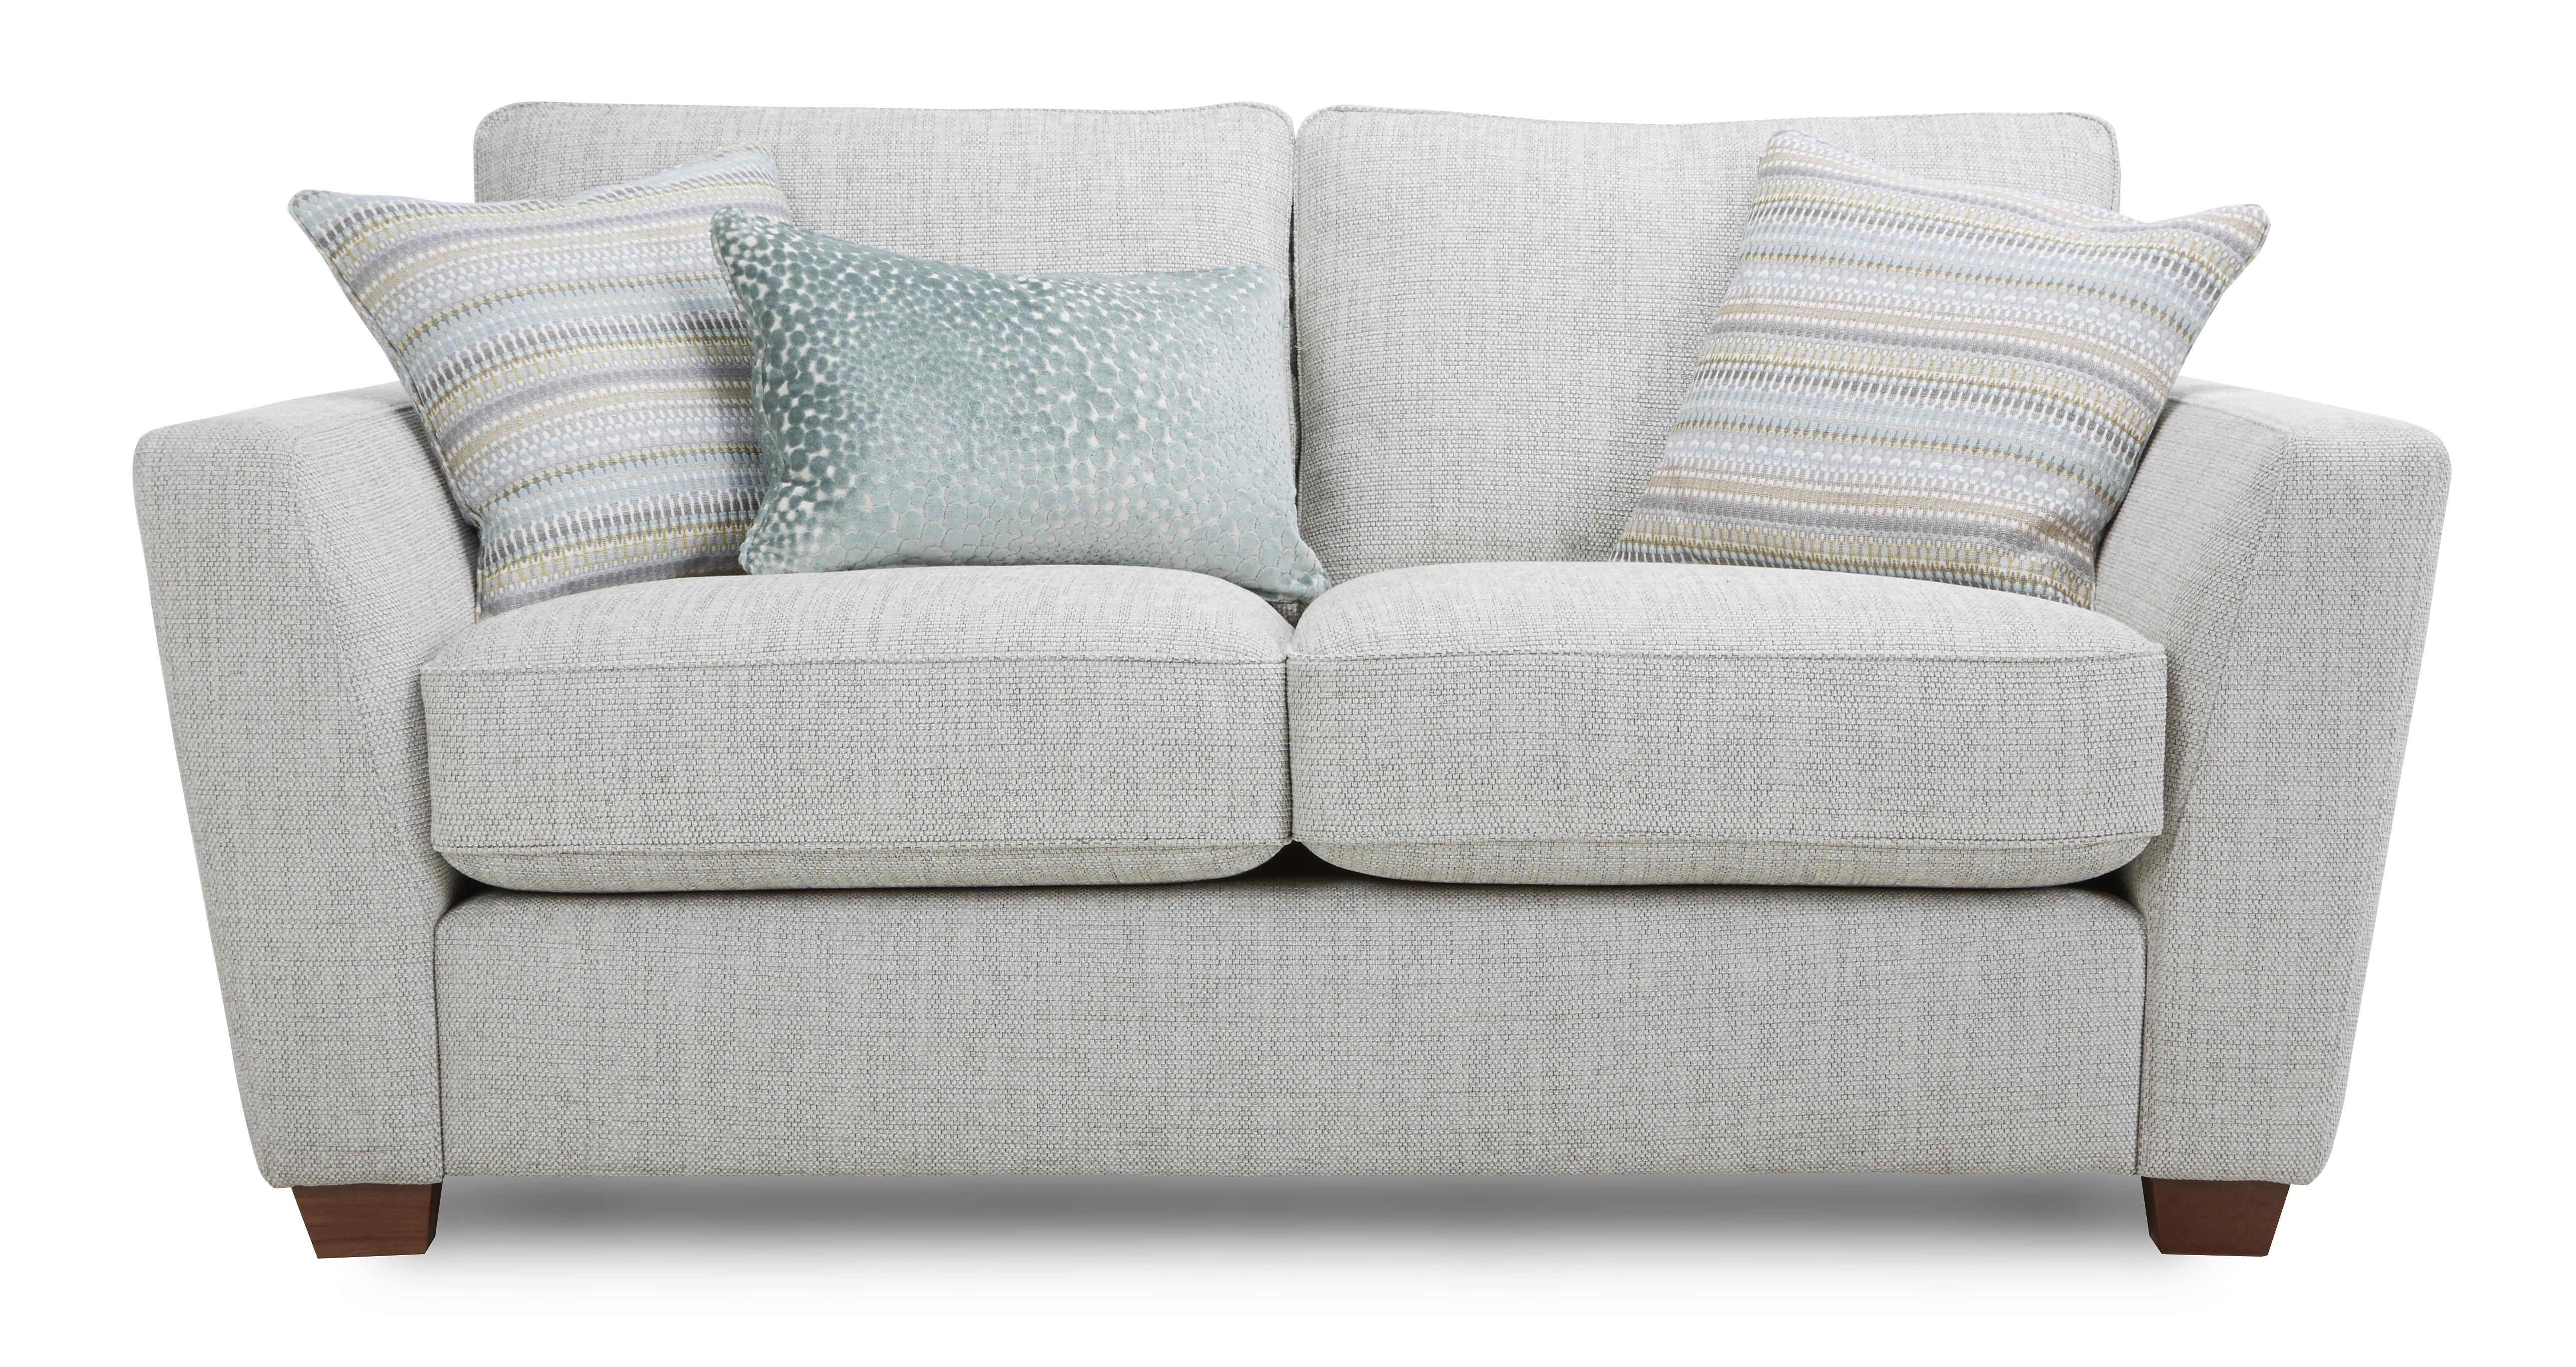 Astonishing Sophia 2 Seater Sofa Caraccident5 Cool Chair Designs And Ideas Caraccident5Info